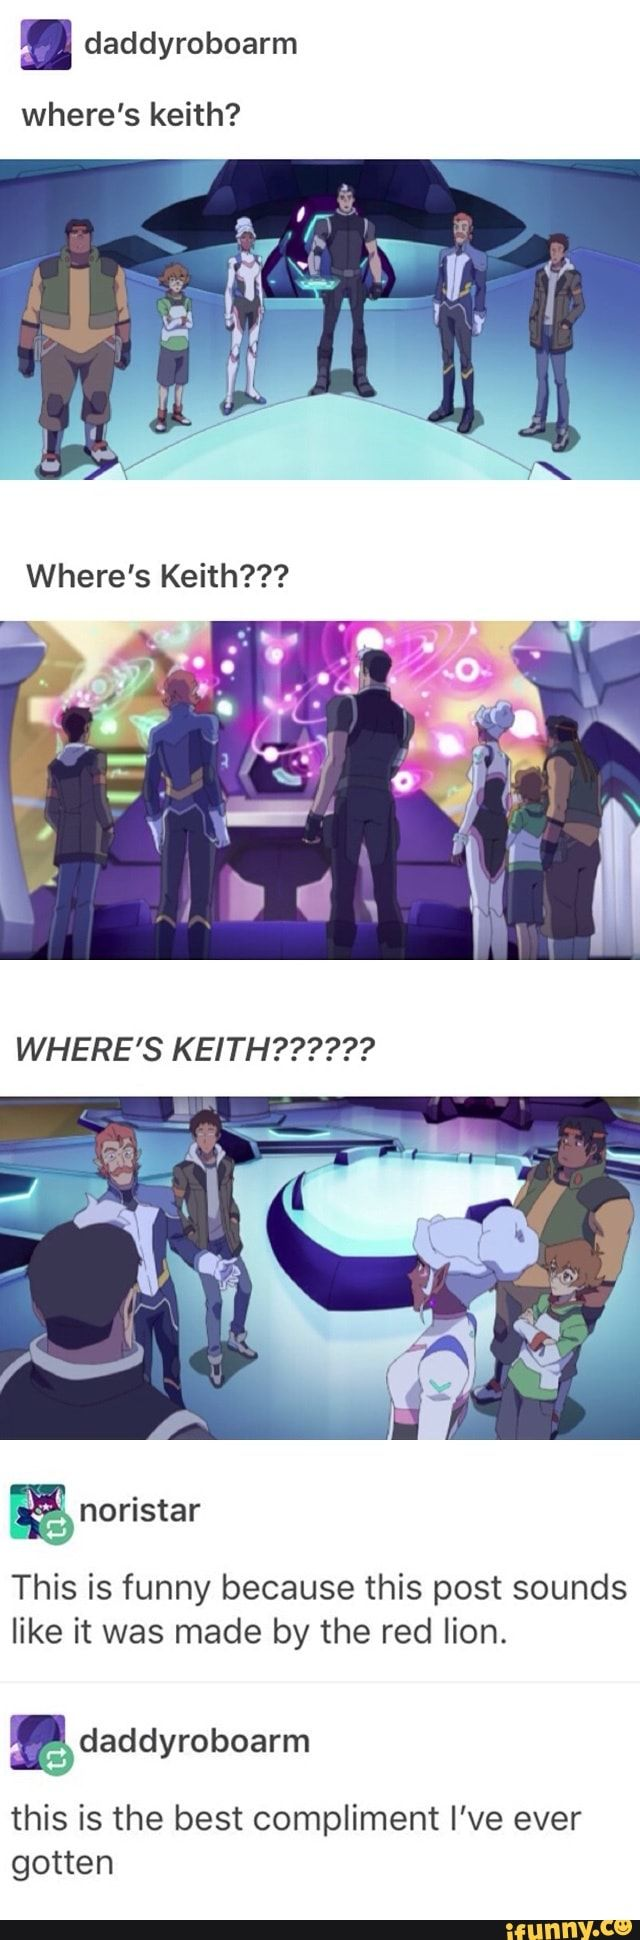 """WHERE'S KEITH!?!? WHERE IS MY SPICY EMO SON!?!? - all i can imagine i Red becoming so worried that she shoves her head through a wall, directly next to Lance's head and just starts yelling """"SON'S BOYFRIEND! FIND MY SON!"""" and Lance just nods."""